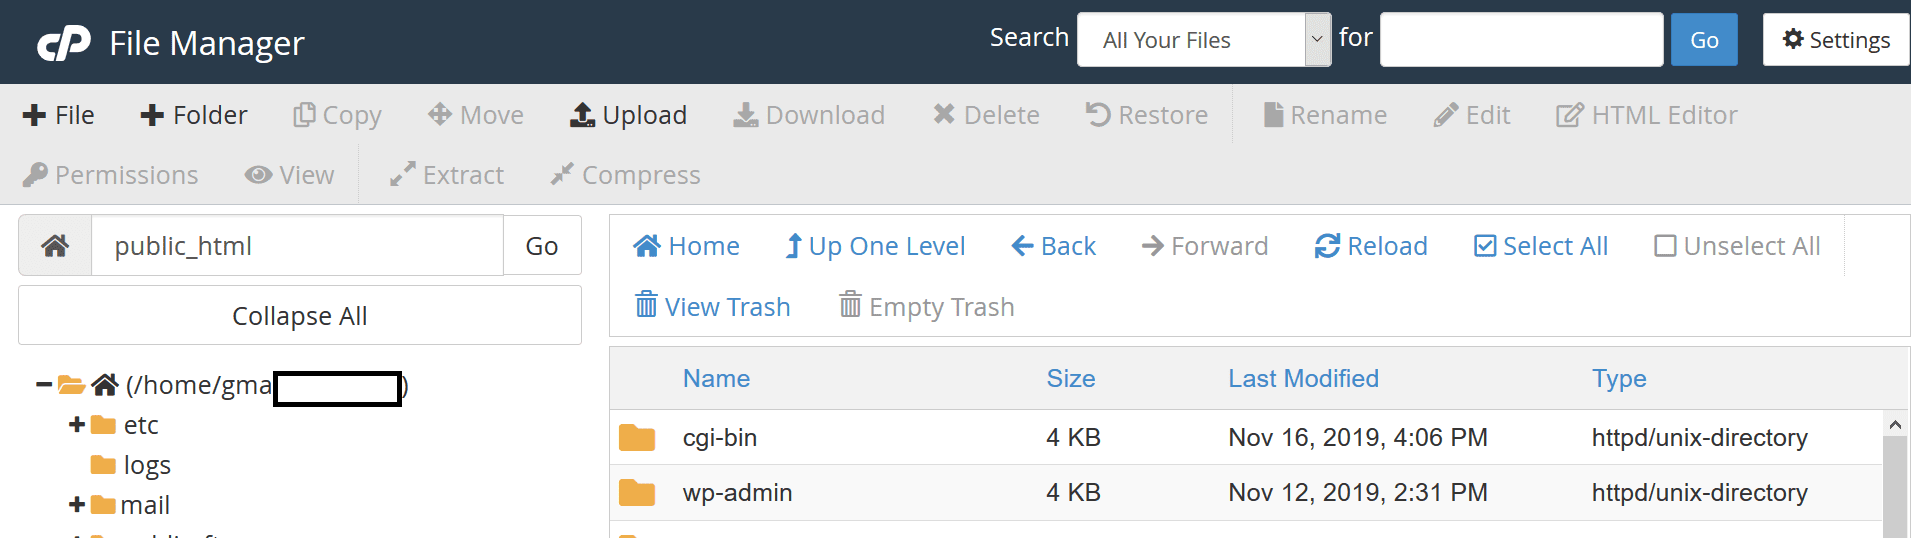 cpanel file manager options directories